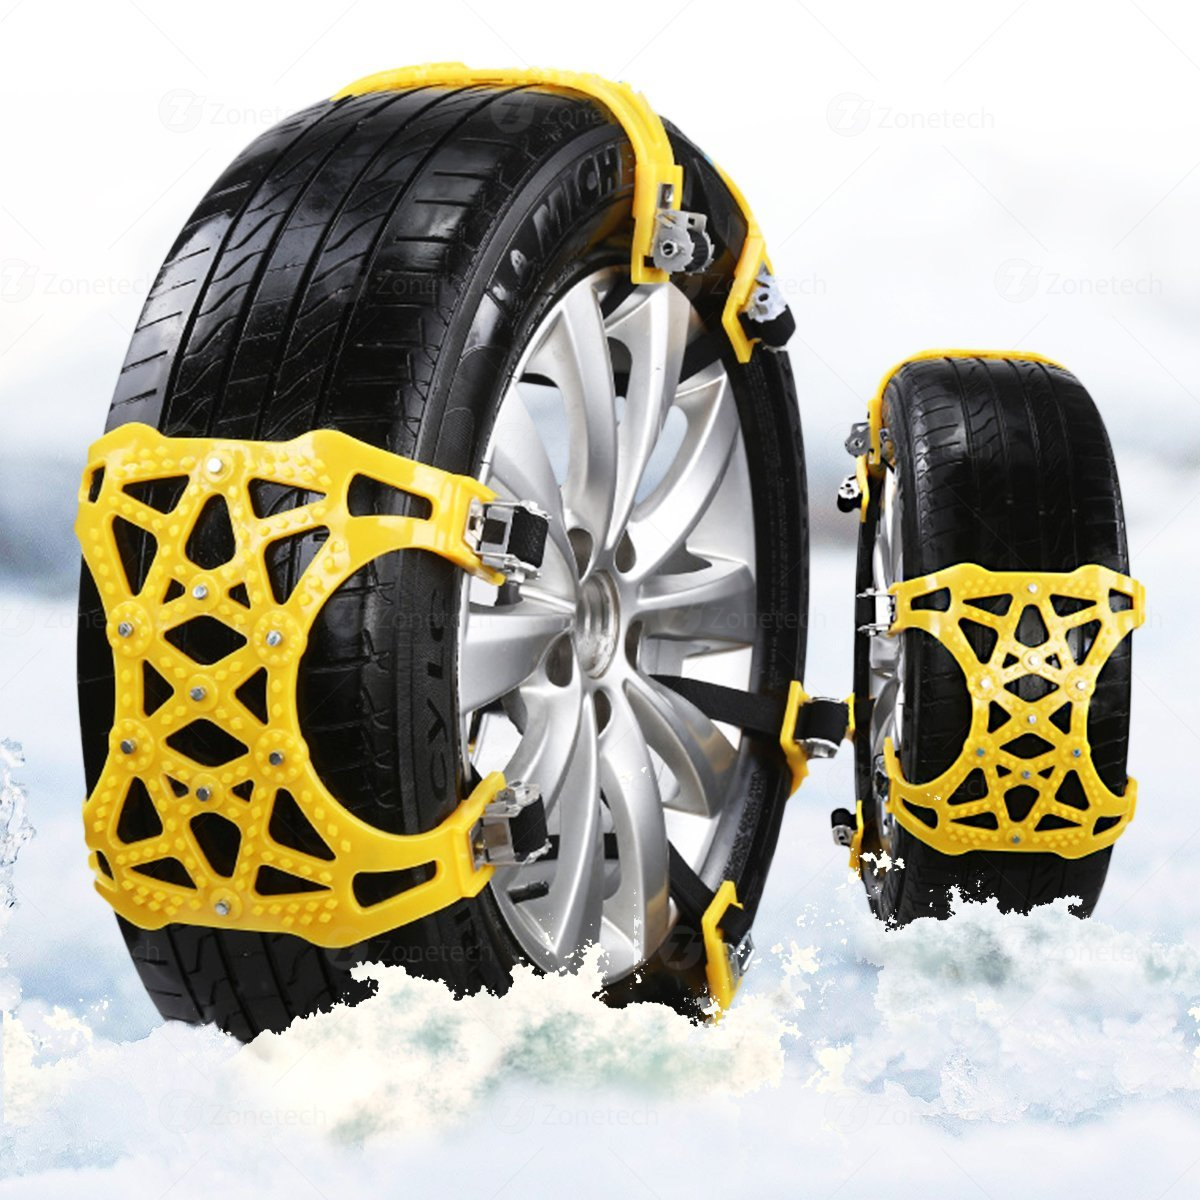 Zone Tech Car Snow Chains - Premium Quality Strong Durable All Season Anti-Skid Car, SUV, and Pick Up Patterned Tire Chains for Emergencies and Road Trip Comfort Wheels